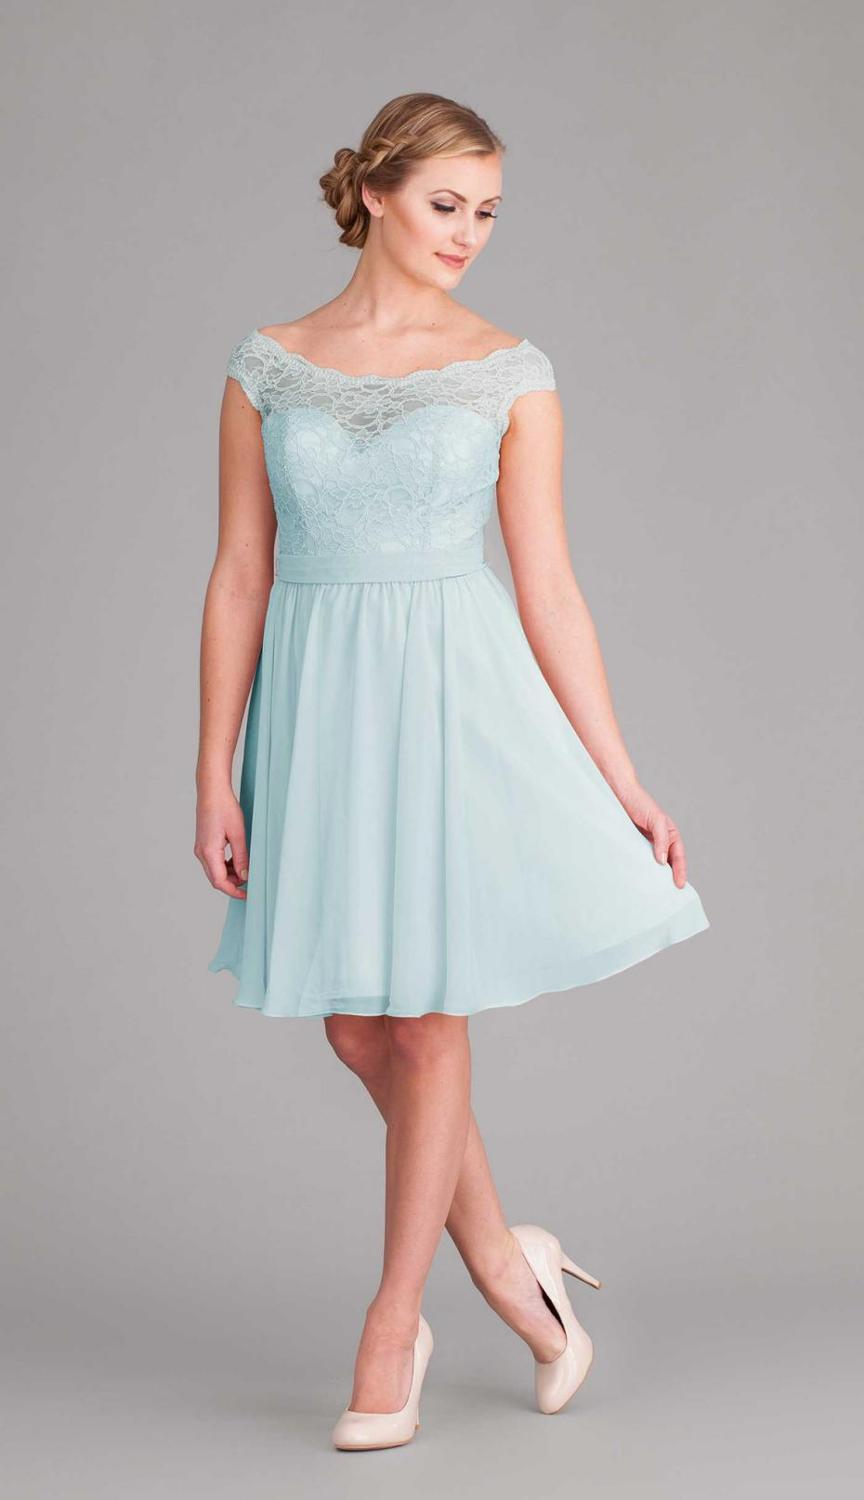 Modest Cheap Bridesmaid Dresses - Flower Girl Dresses